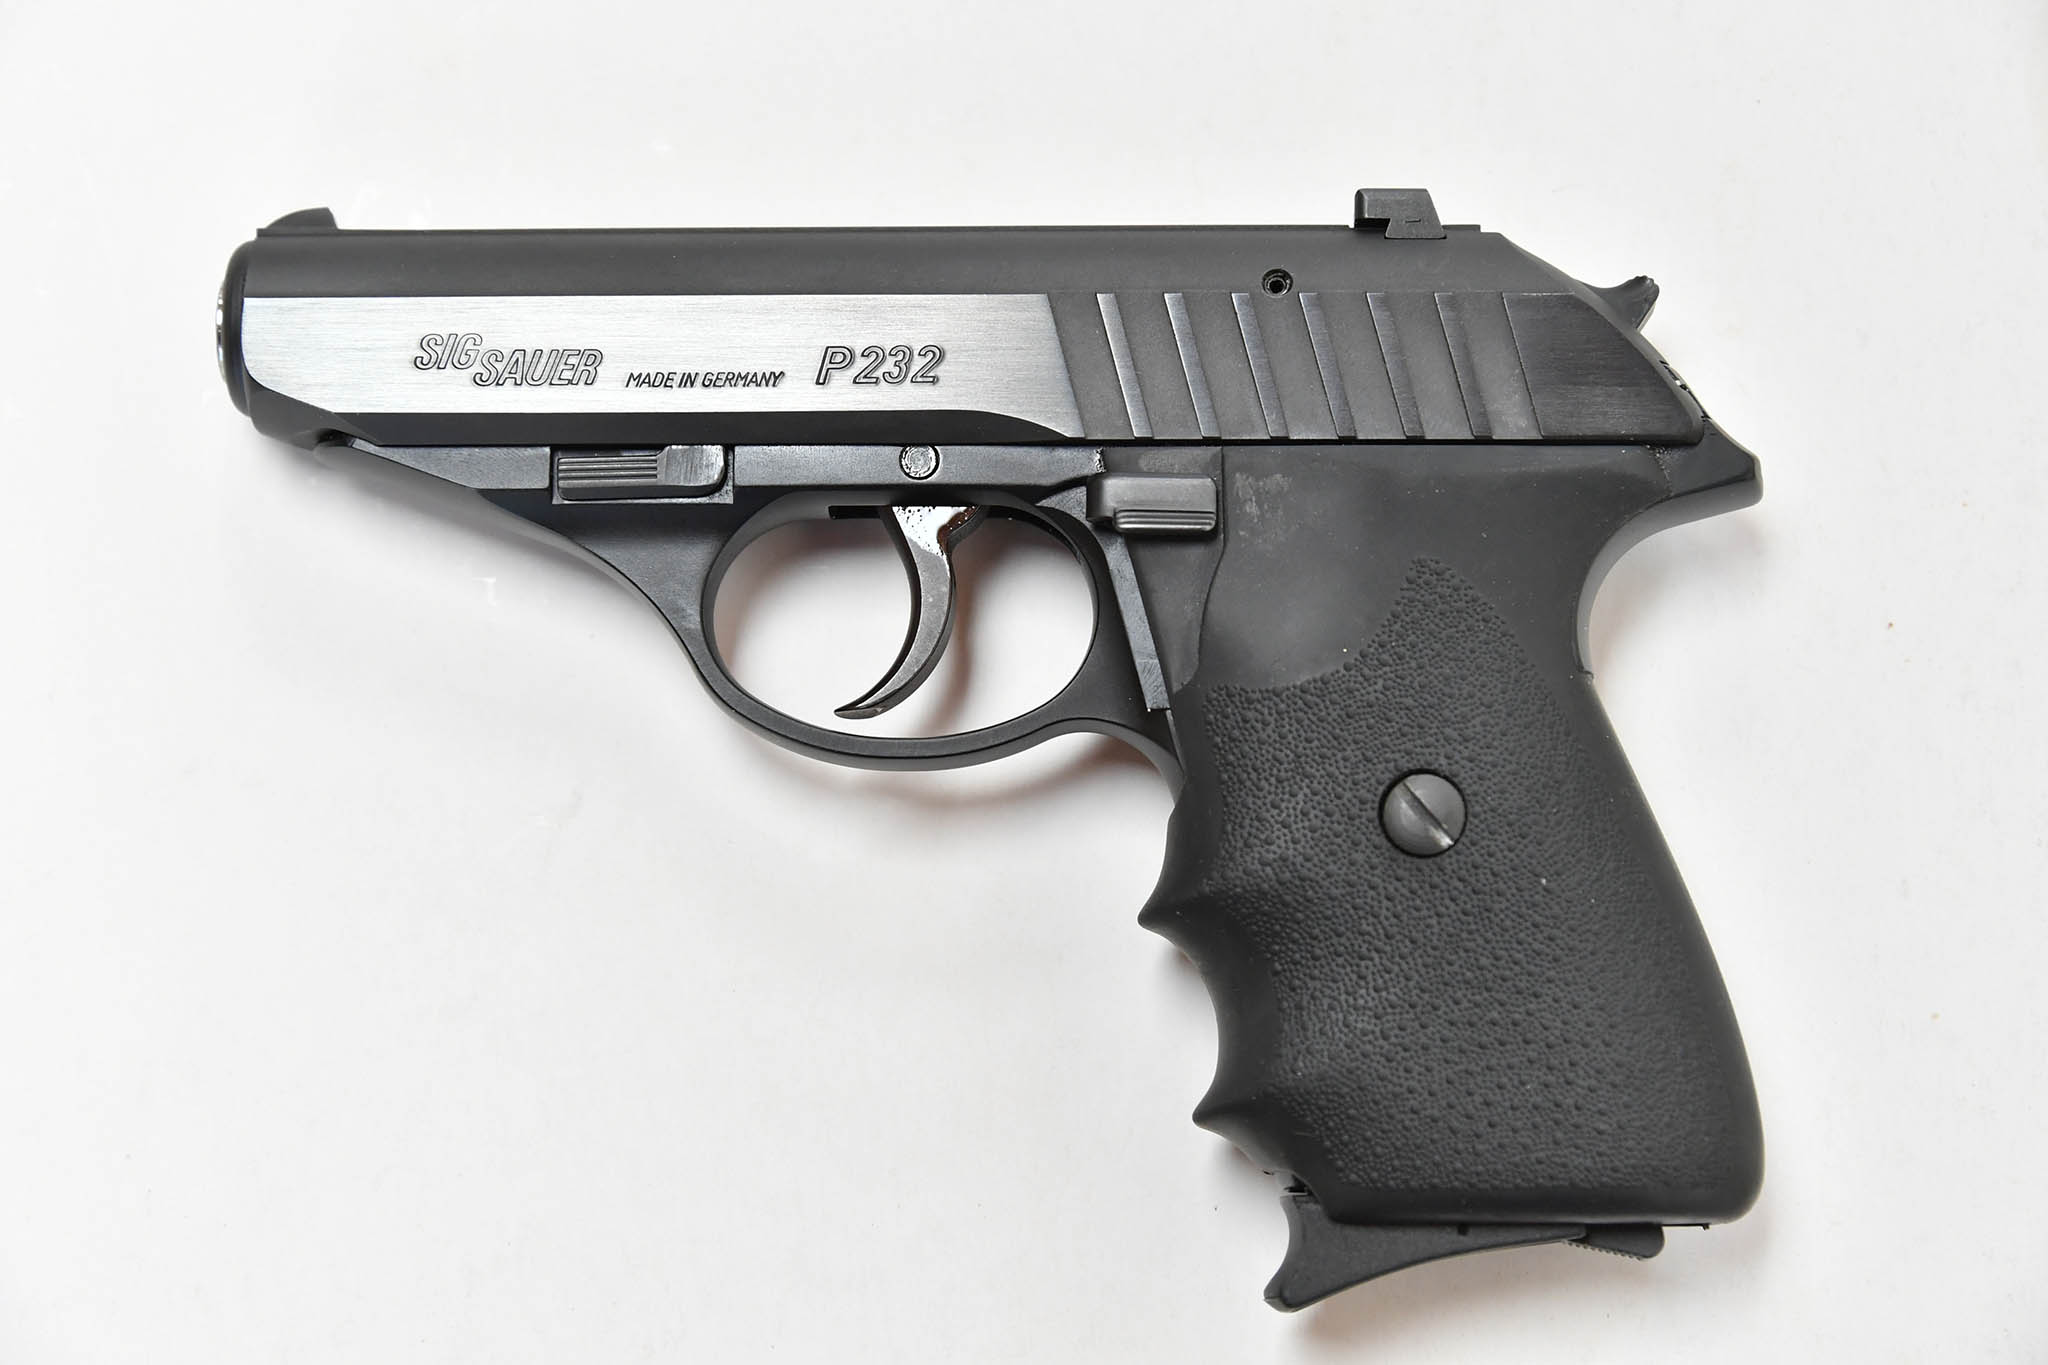 Left side of the SIG Sauer P232 Black .380 Auto pistol.